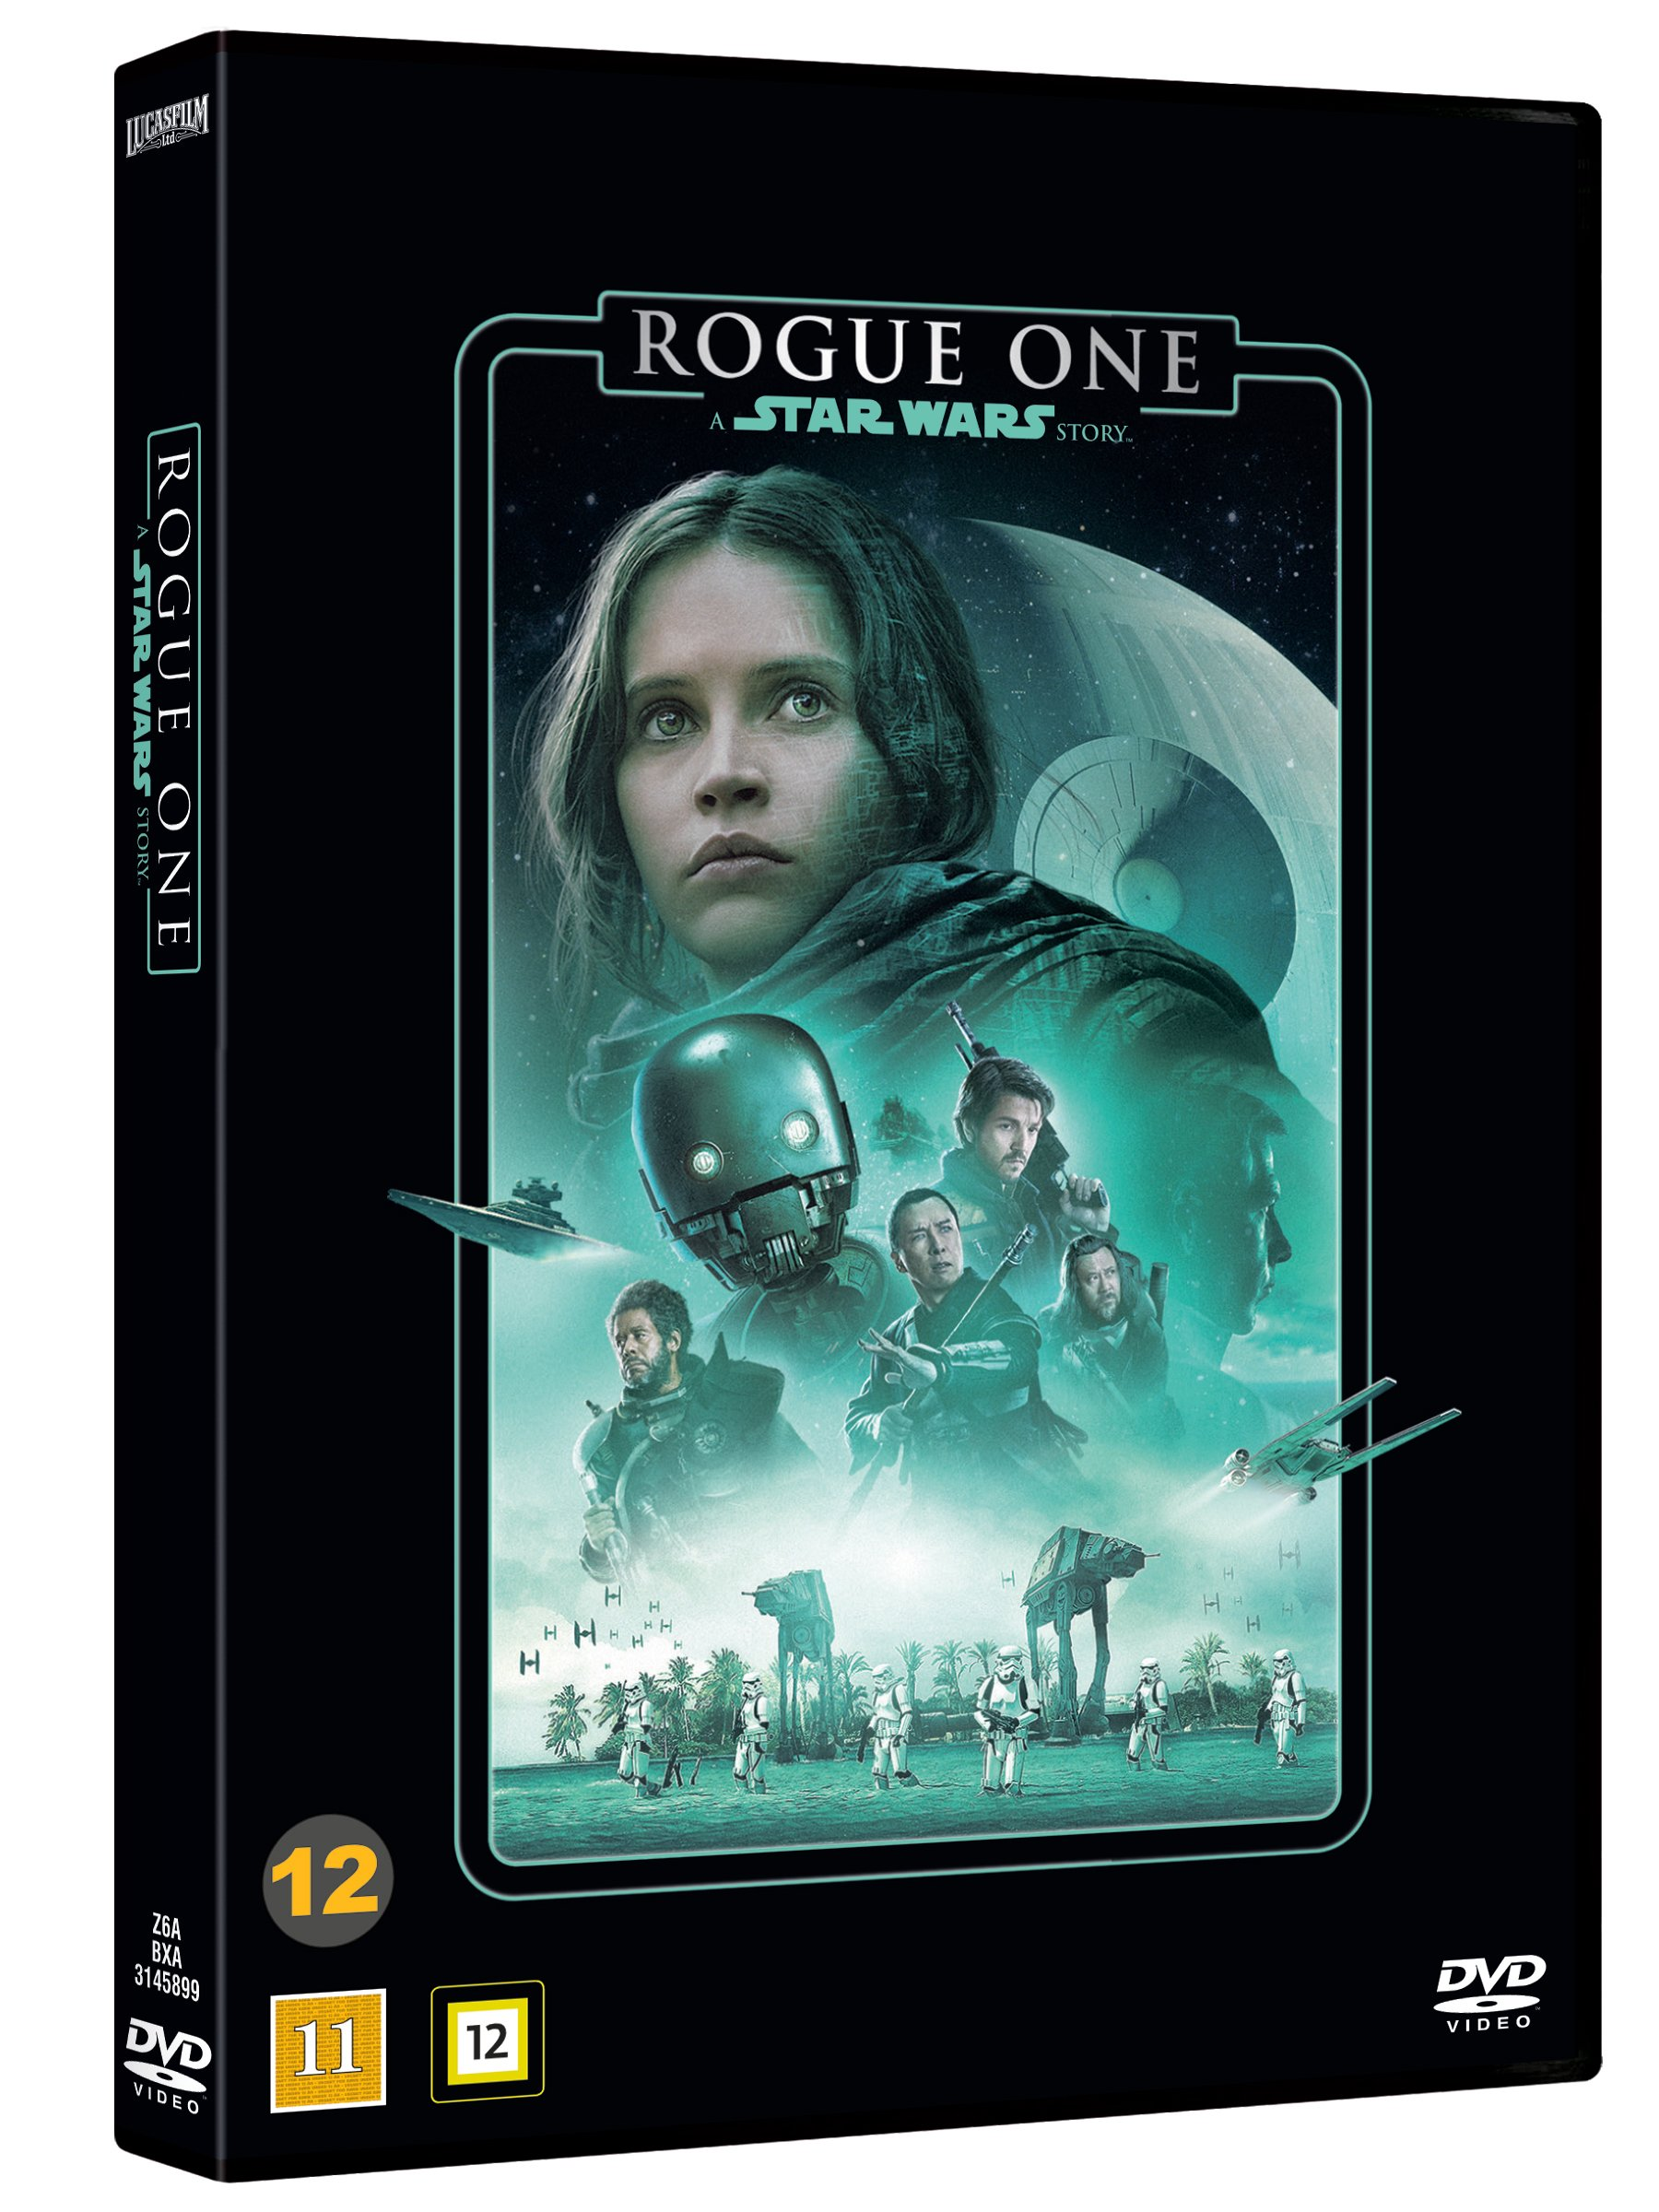 Rogue One A Star Wars Story - DVD